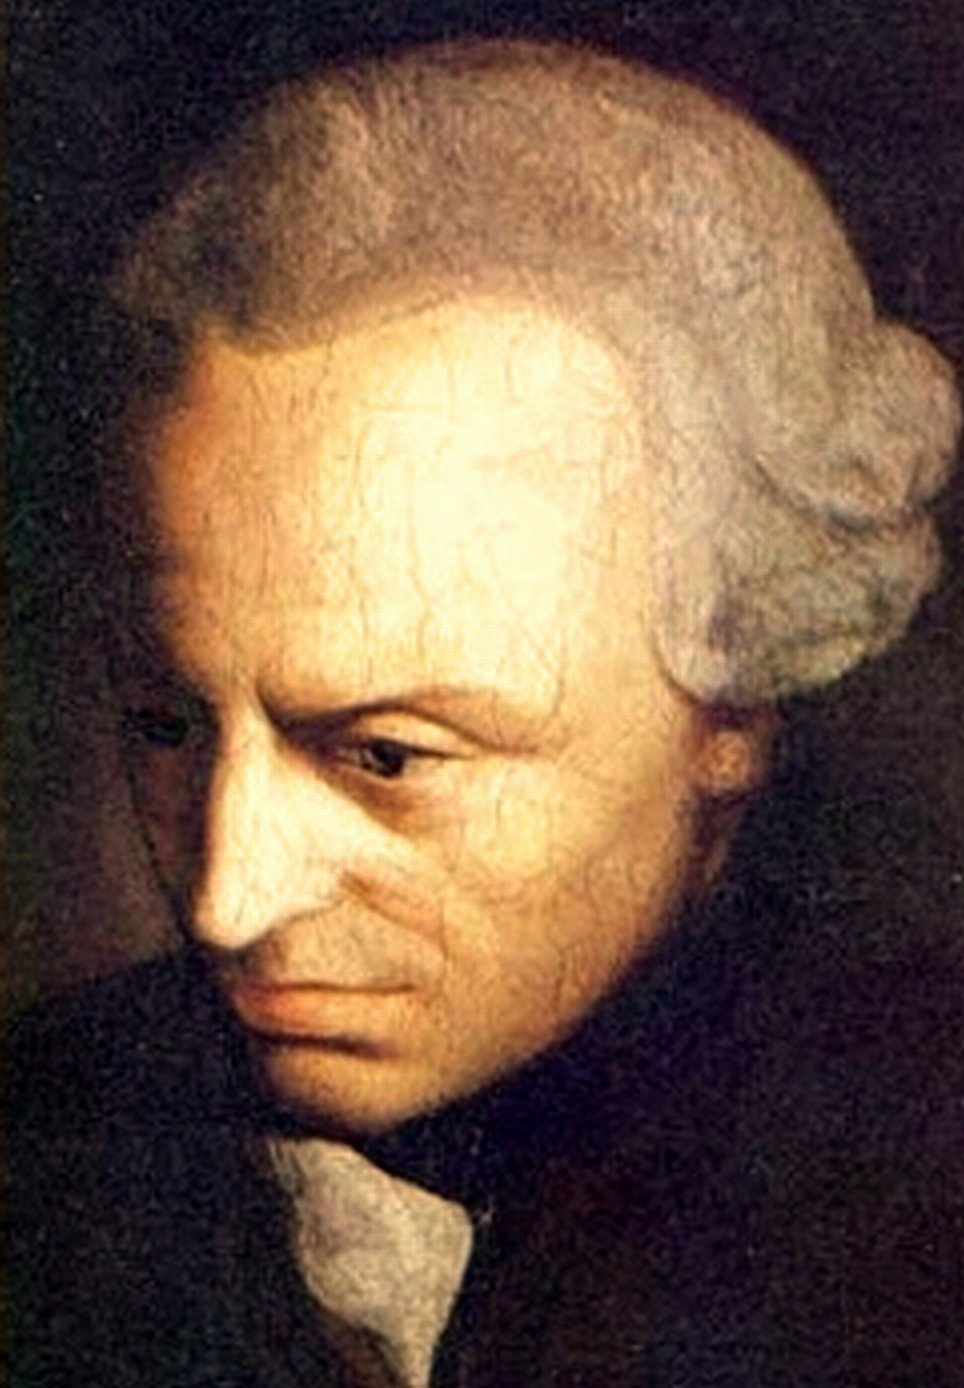 The Ways of the Worldviews (Part 45): Immanuel [you] Kant ...